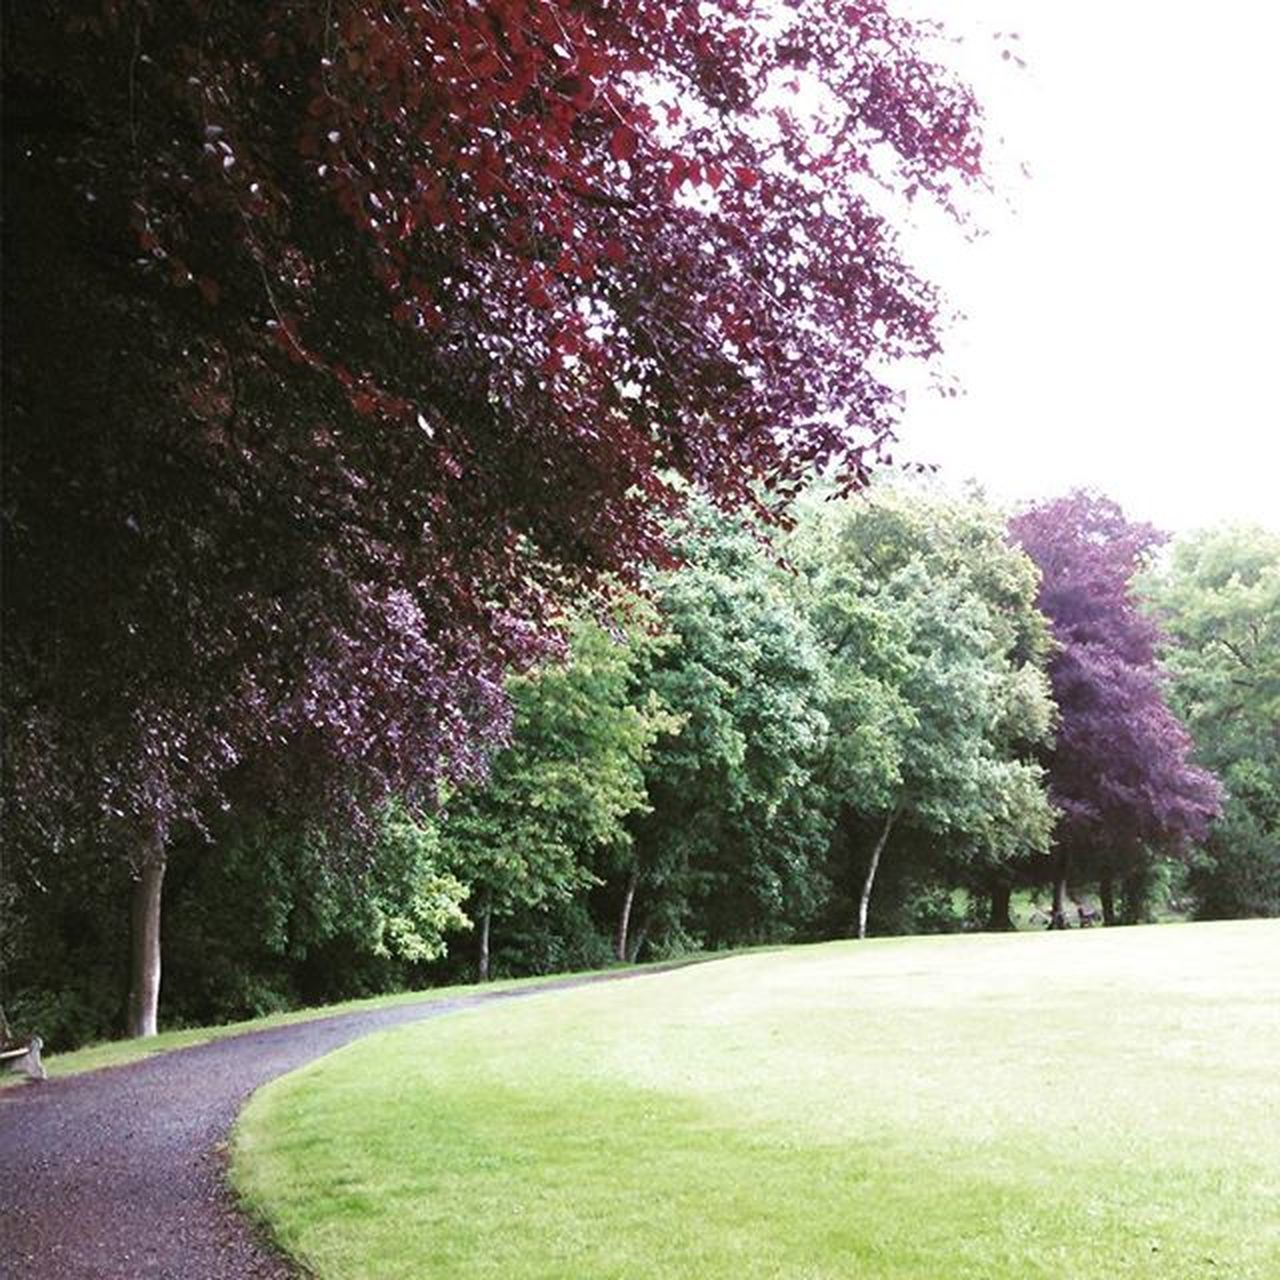 Simmonspark Okehampton OKE Parklife beautiful ilovethisplace devonlife devon